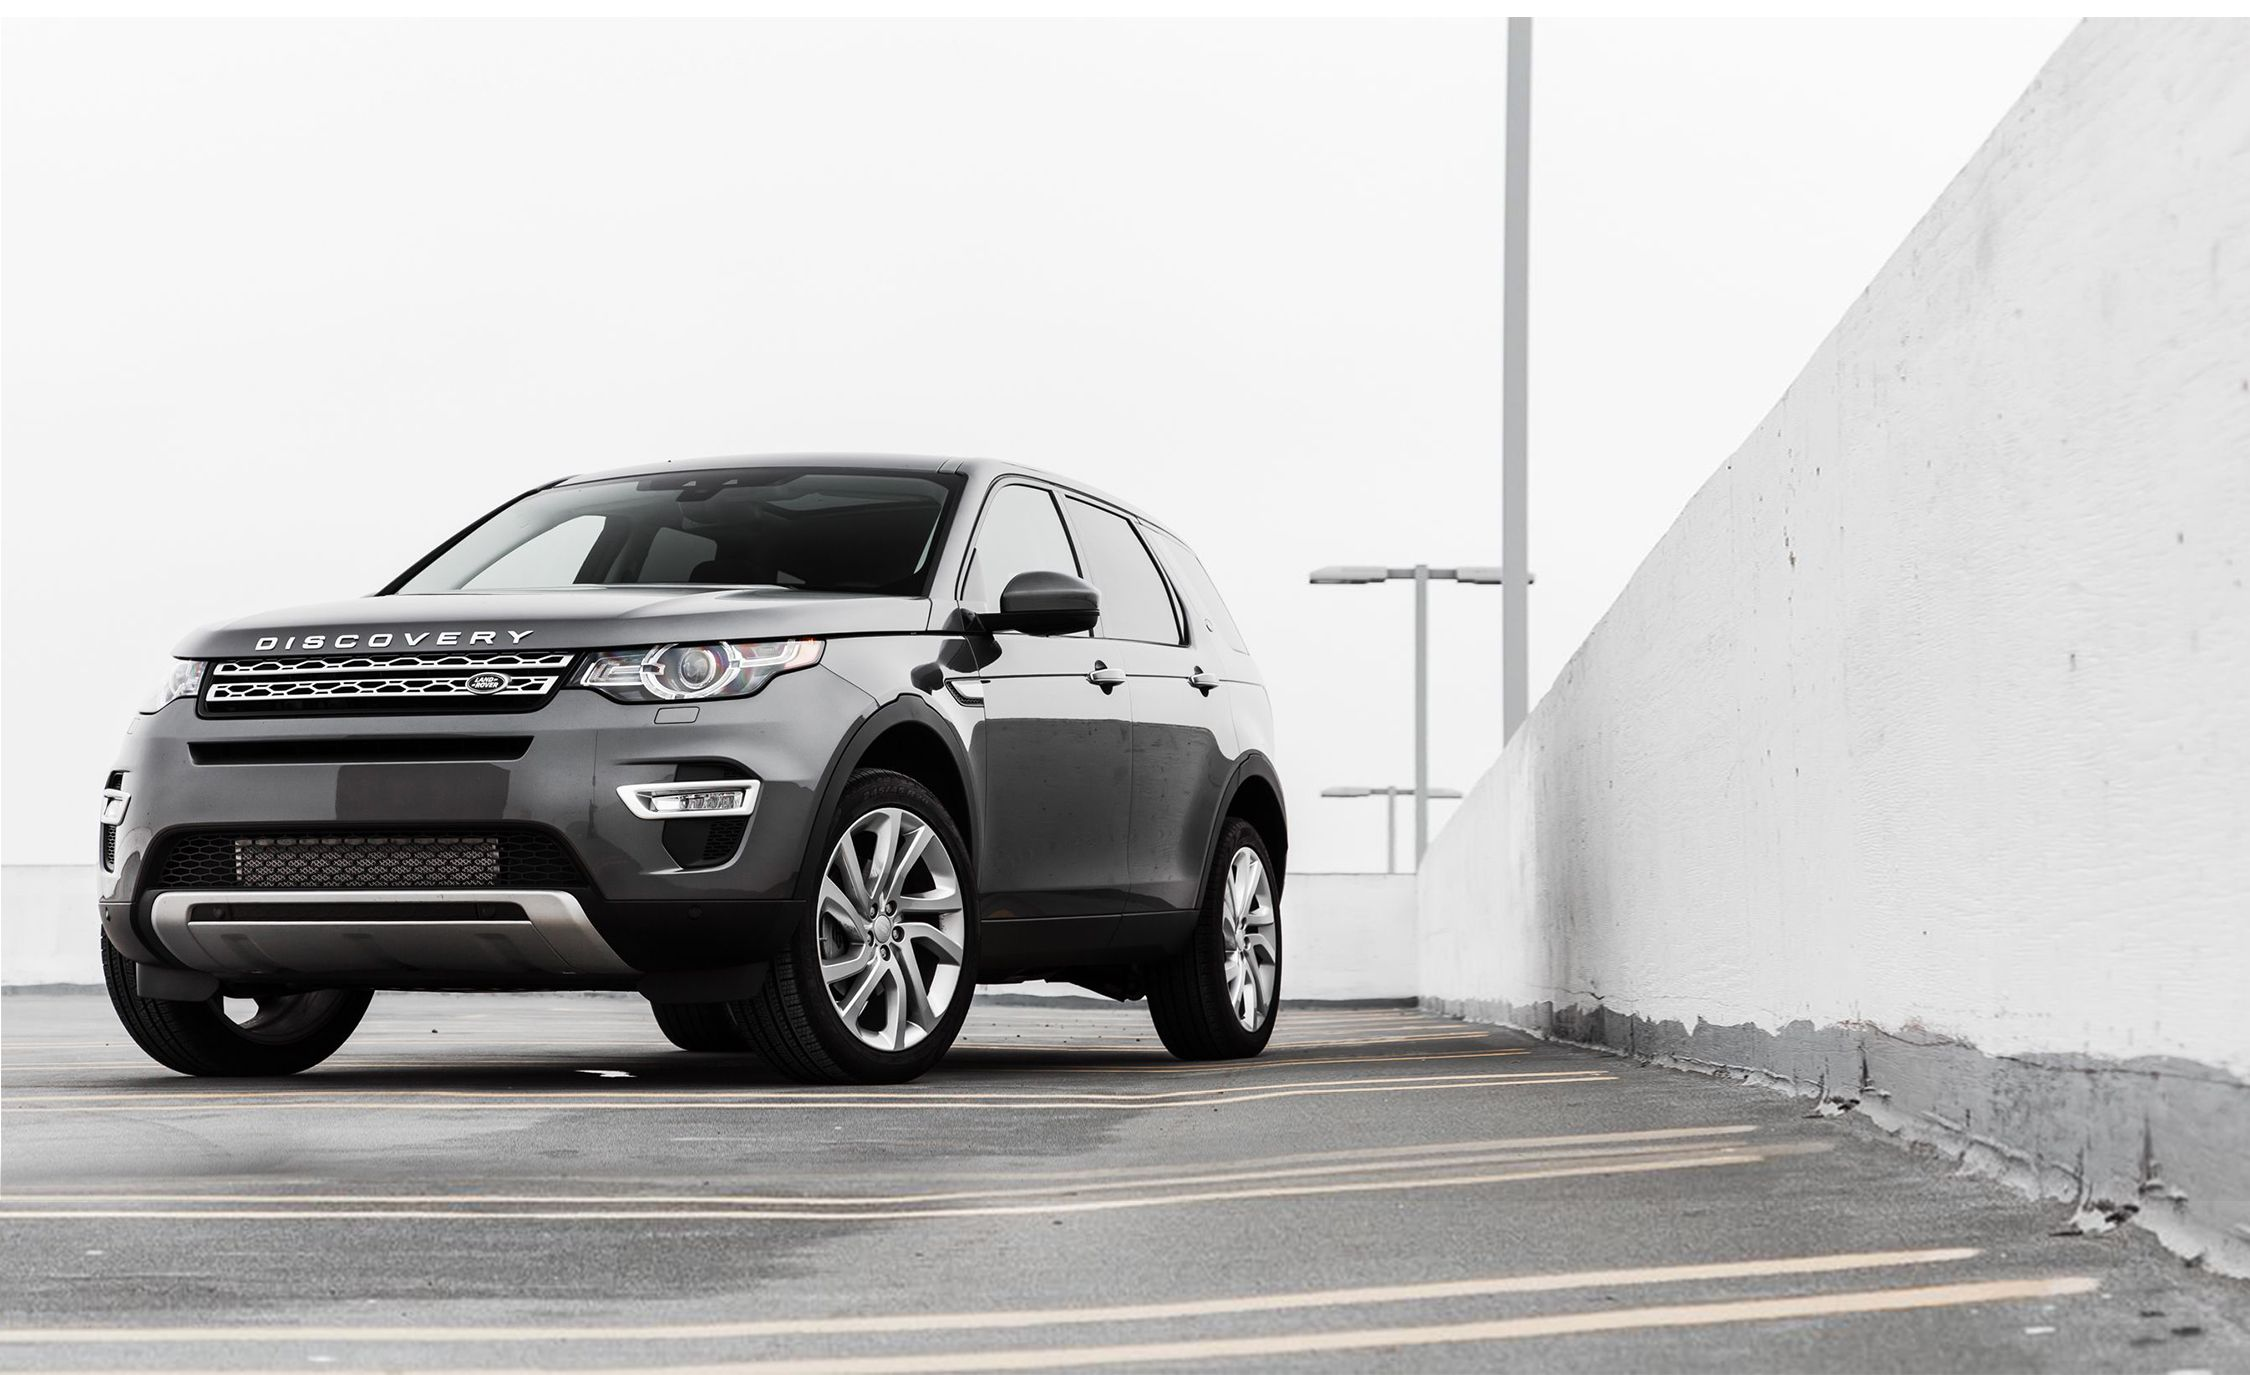 2015 Land Rover Discovery Sport Test 8211 Review 8211 Car And